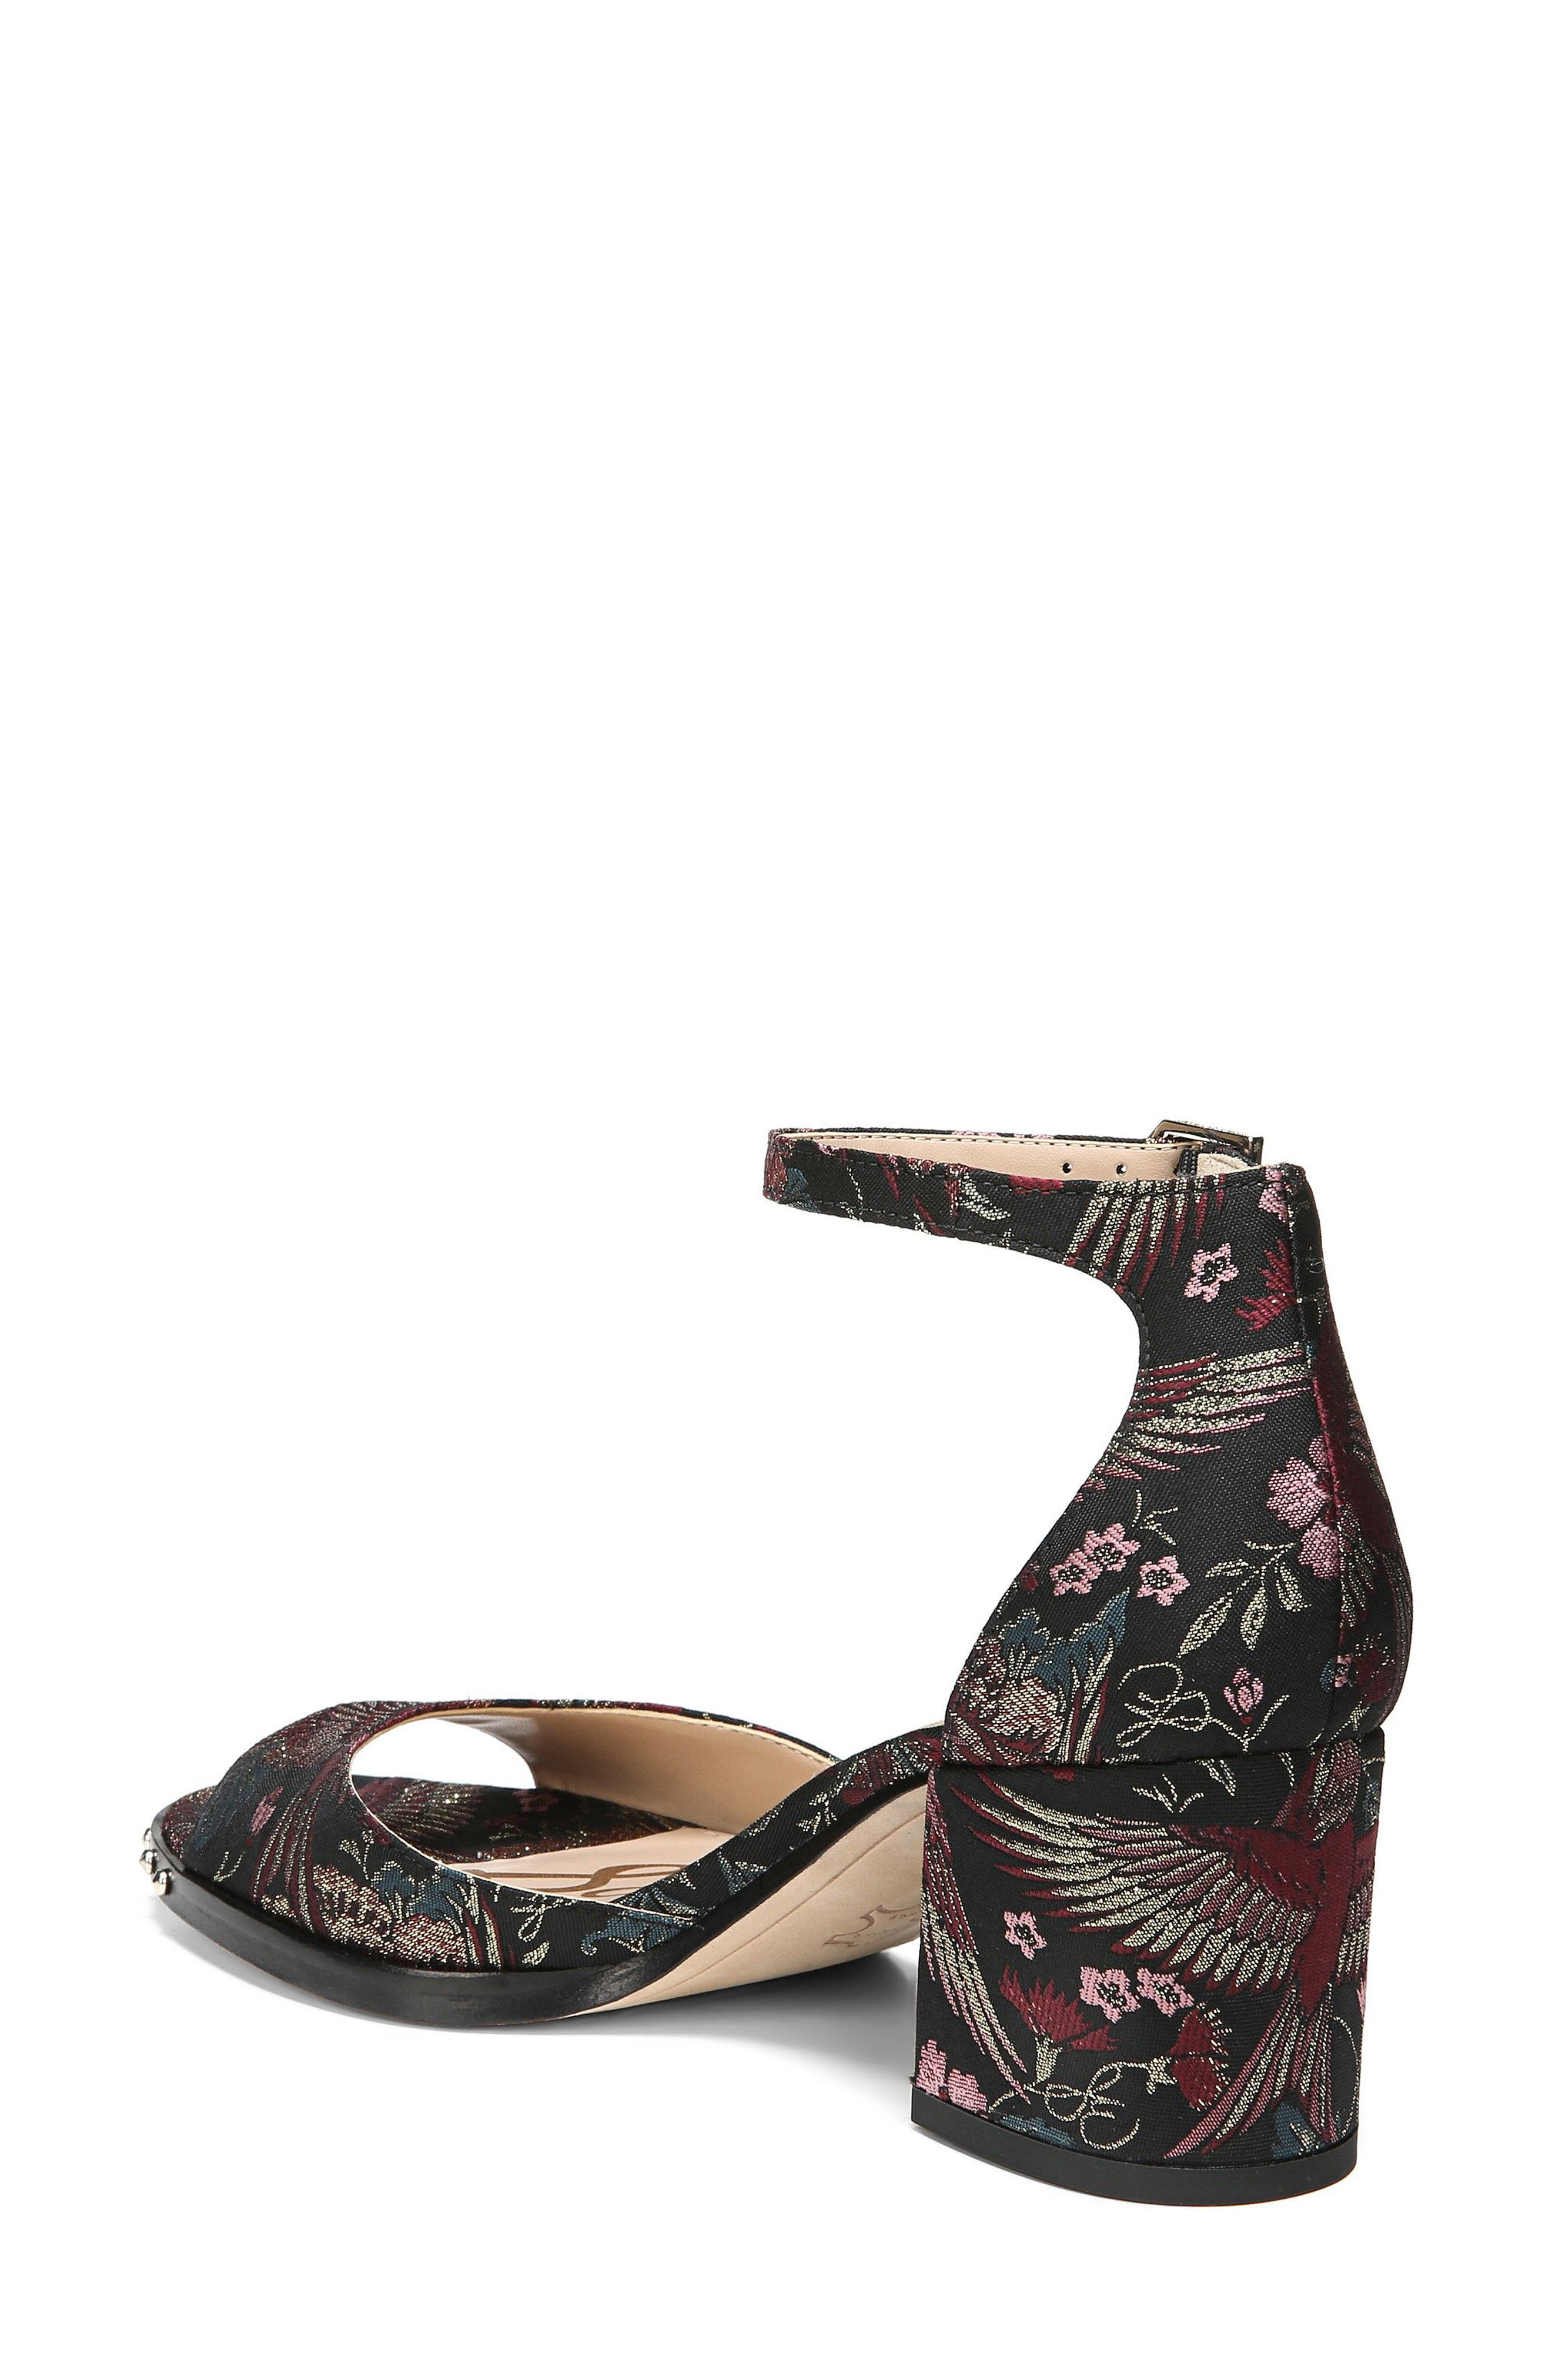 Susie Ankle Strap Sandal,                             Alternate thumbnail 2, color,                             002